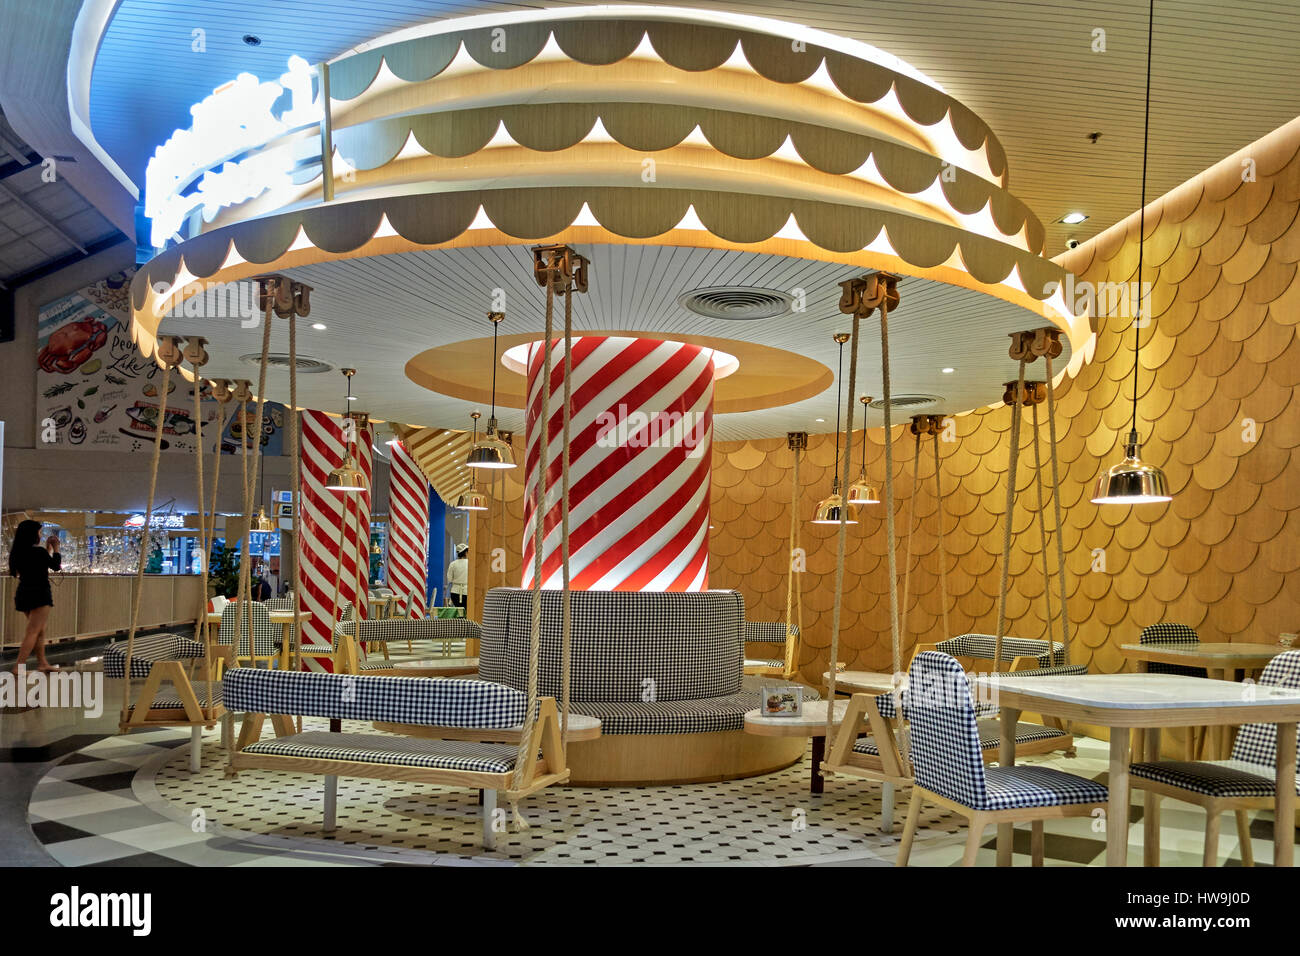 Unusual and imaginative rotund, carousel like, dining area in a Thailand Restaurant. - Stock Image